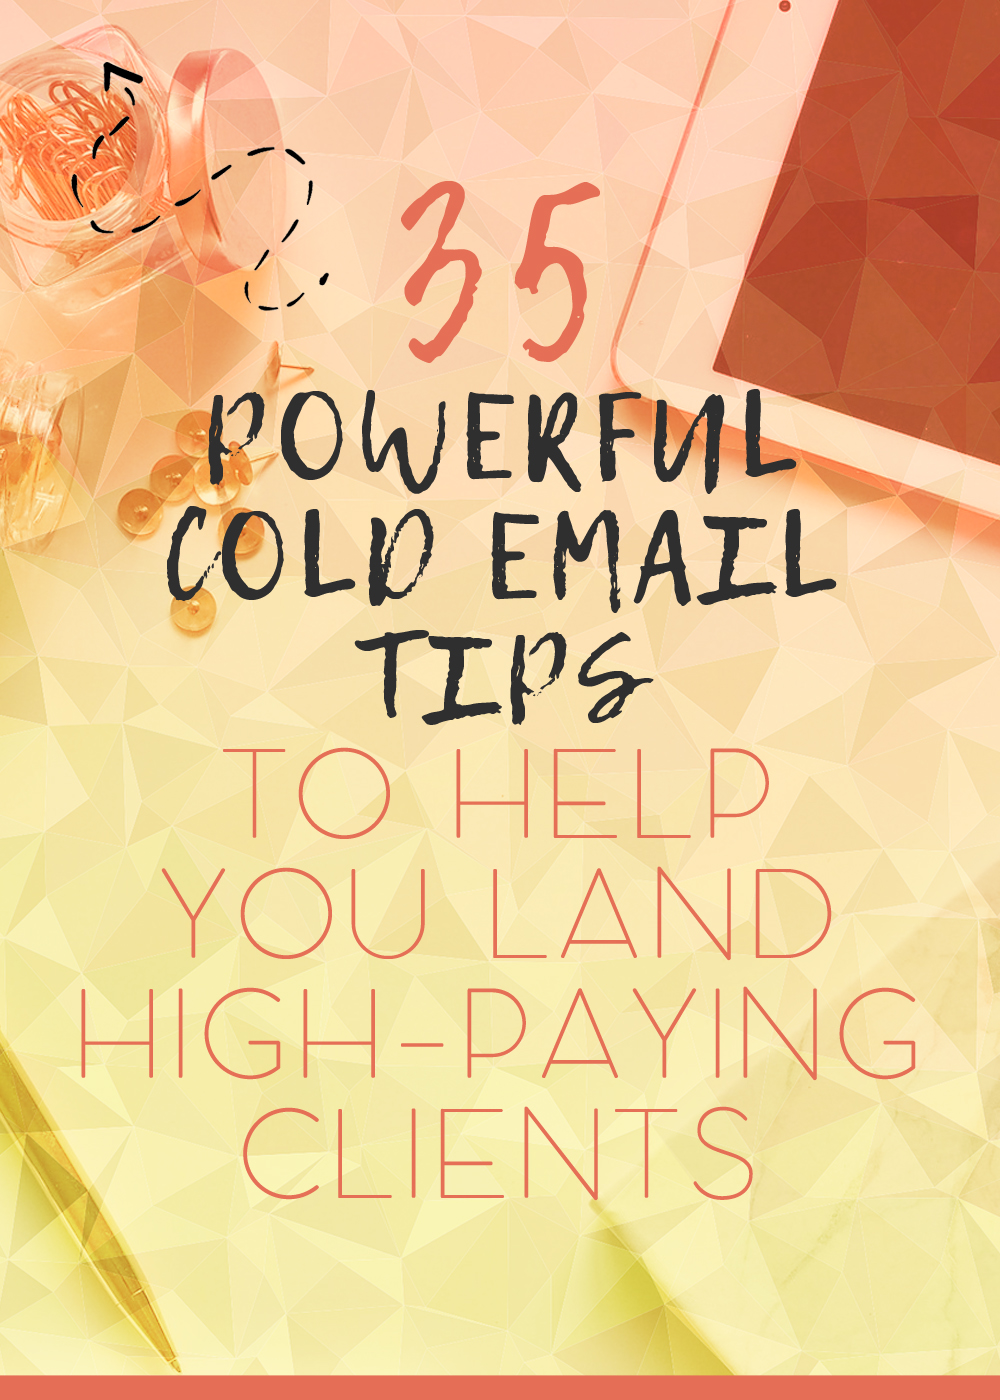 These powerful cold email tips will help make writing cold emails a walk in the park - and ten times more successful!